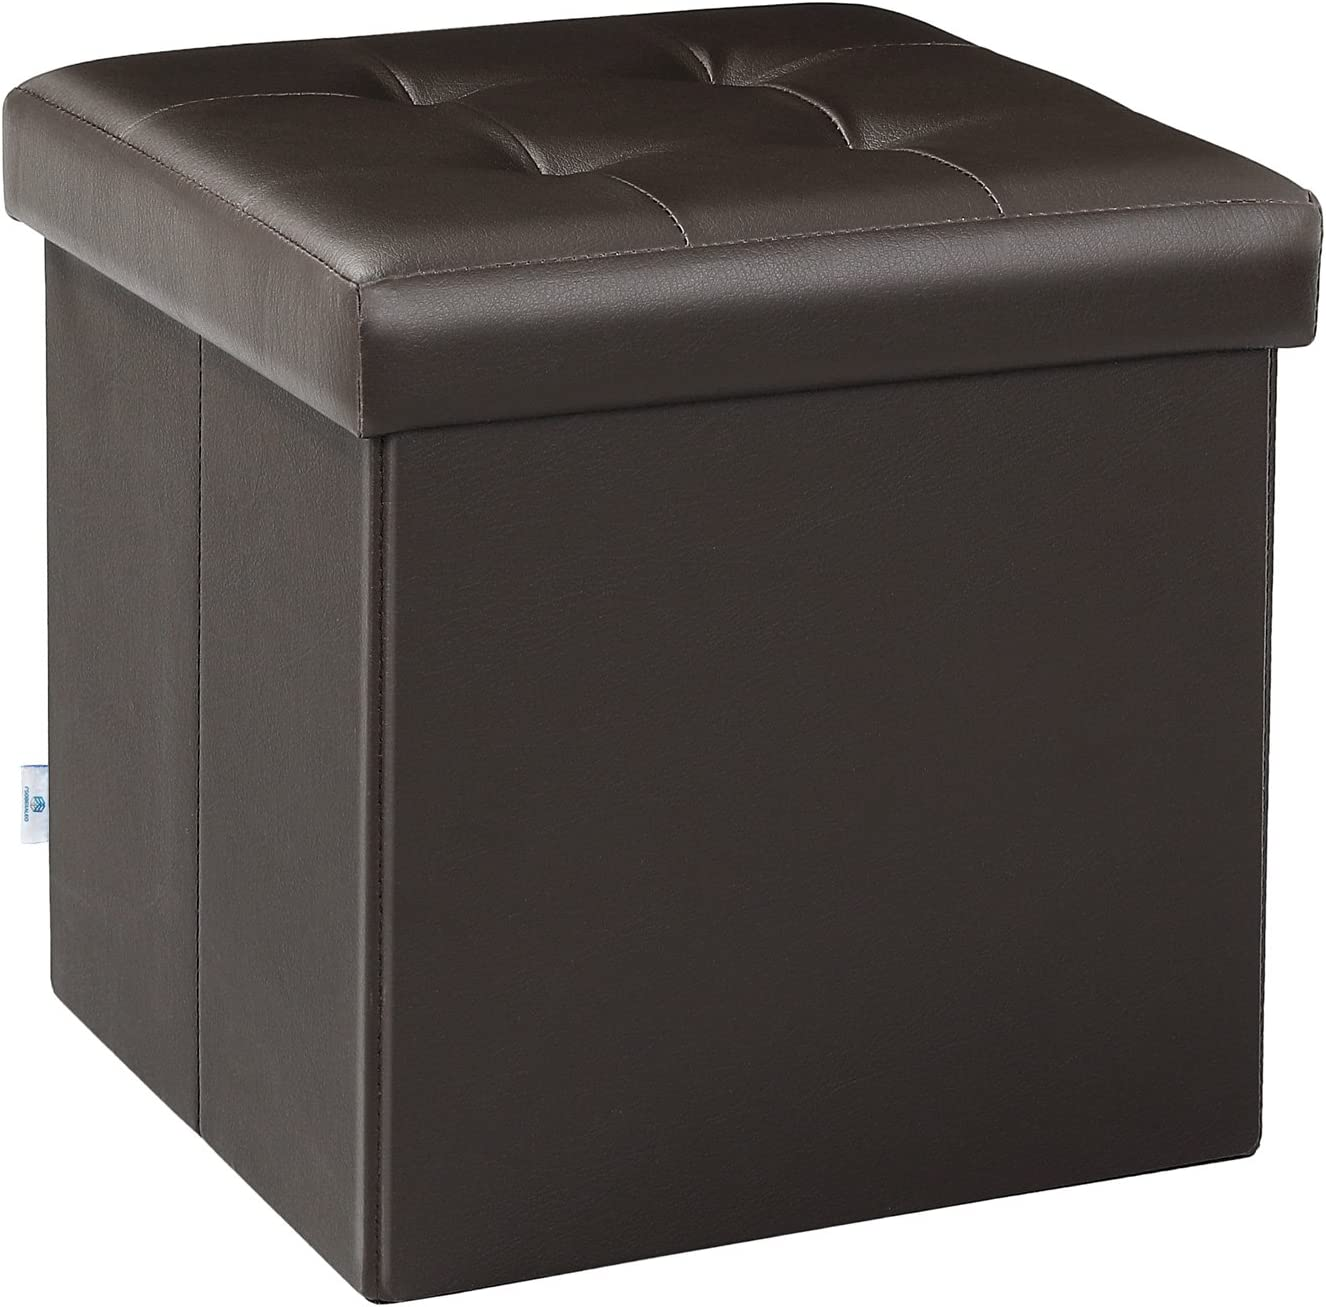 "B FSOBEIIALEO Folding Storage Ottoman Footrest Stool for Baby Faux Leather Seat Chest Brown 12.6""X12.6""X12.6"""